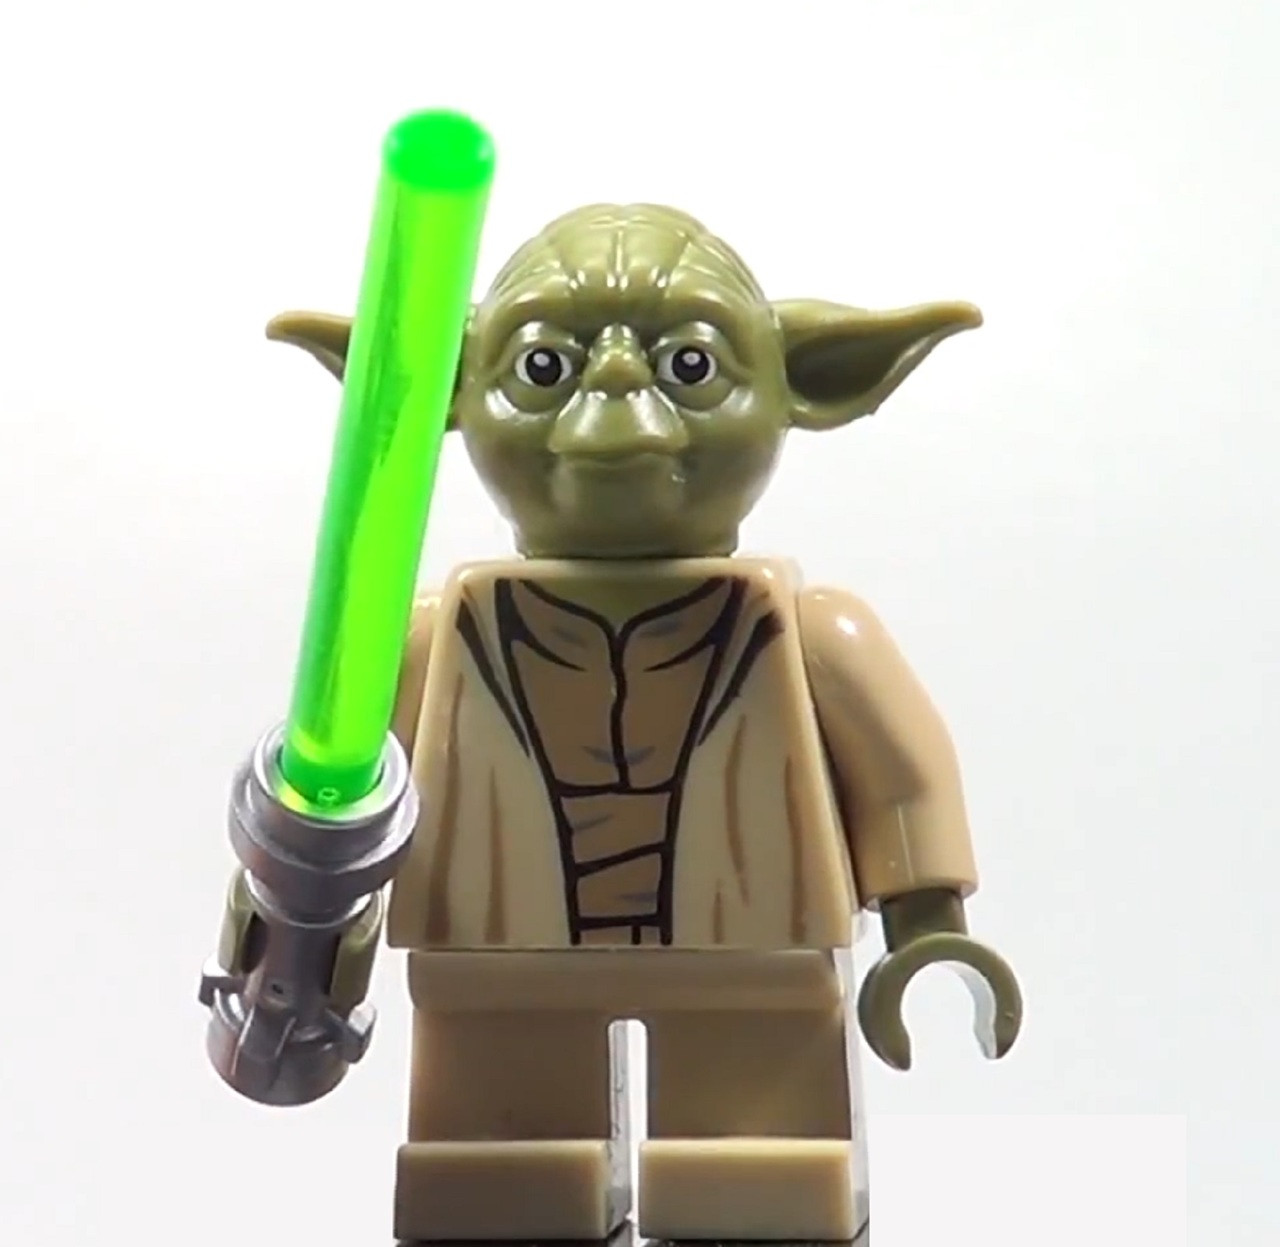 lego® star wars yoda minifig from 75017  the brick people